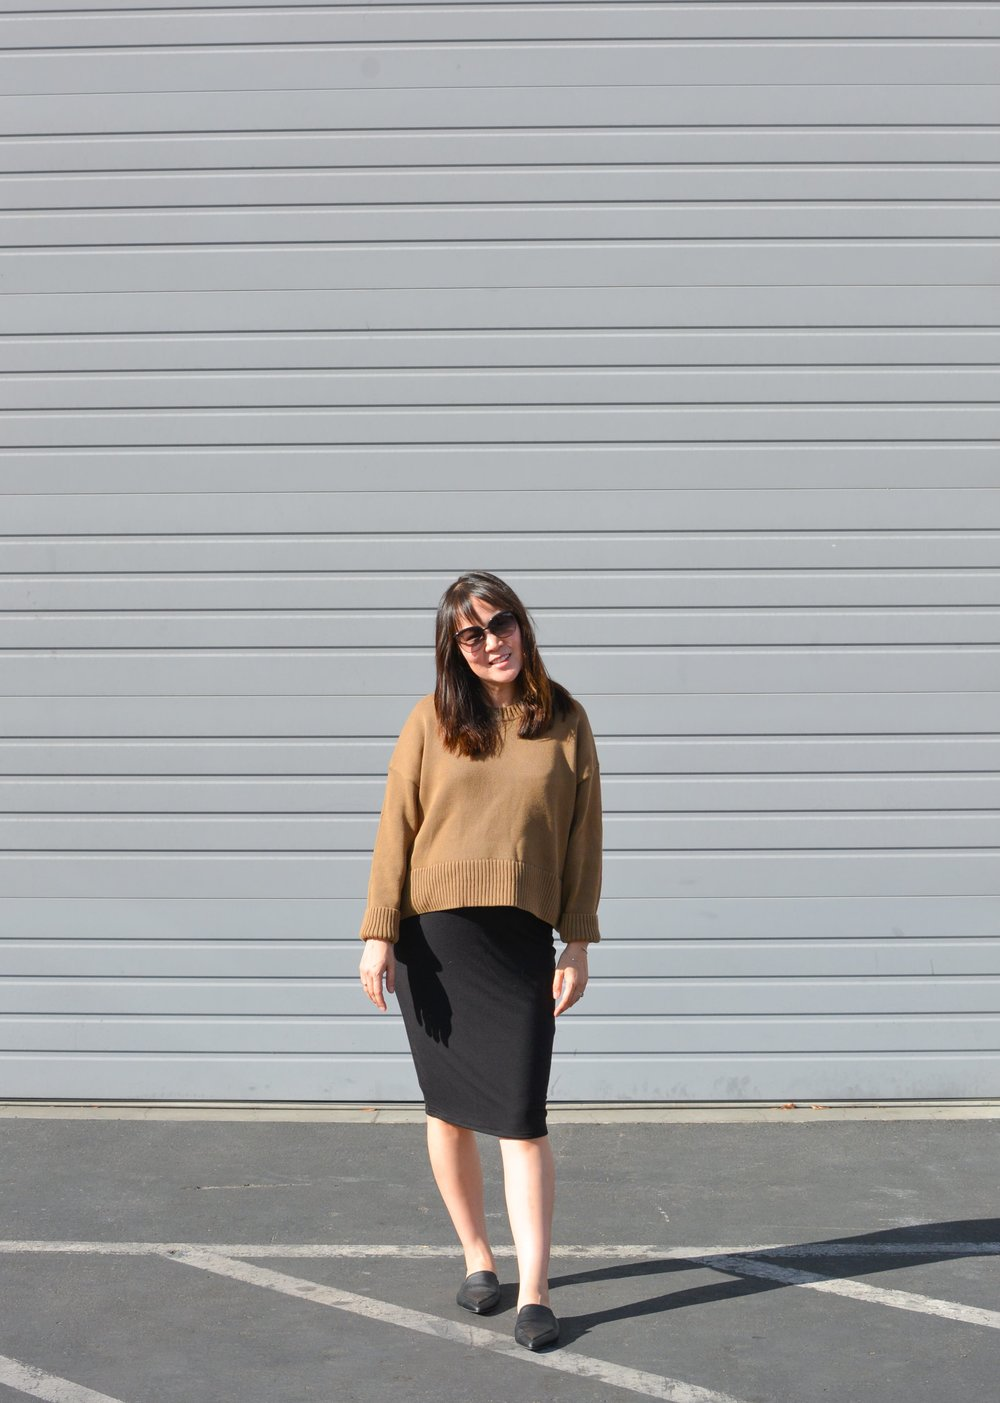 Everlane review soft cotton square crew (4 of 4)-min.jpg